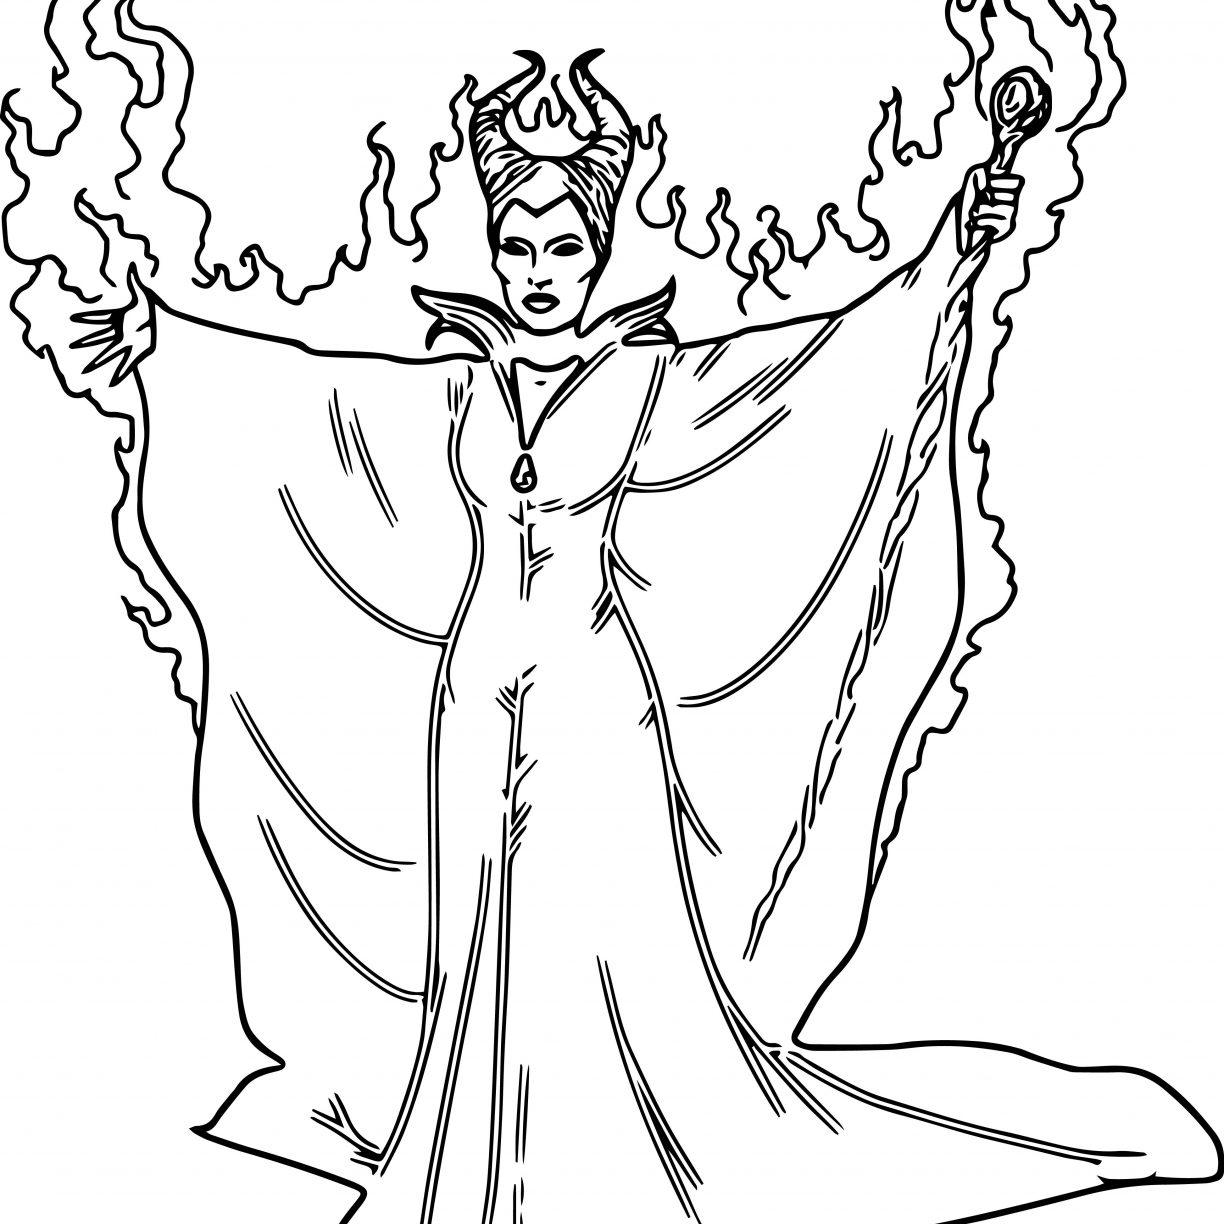 1224x1224 Maleficent Diablo Coloring Page Pages General Wings Sleeping